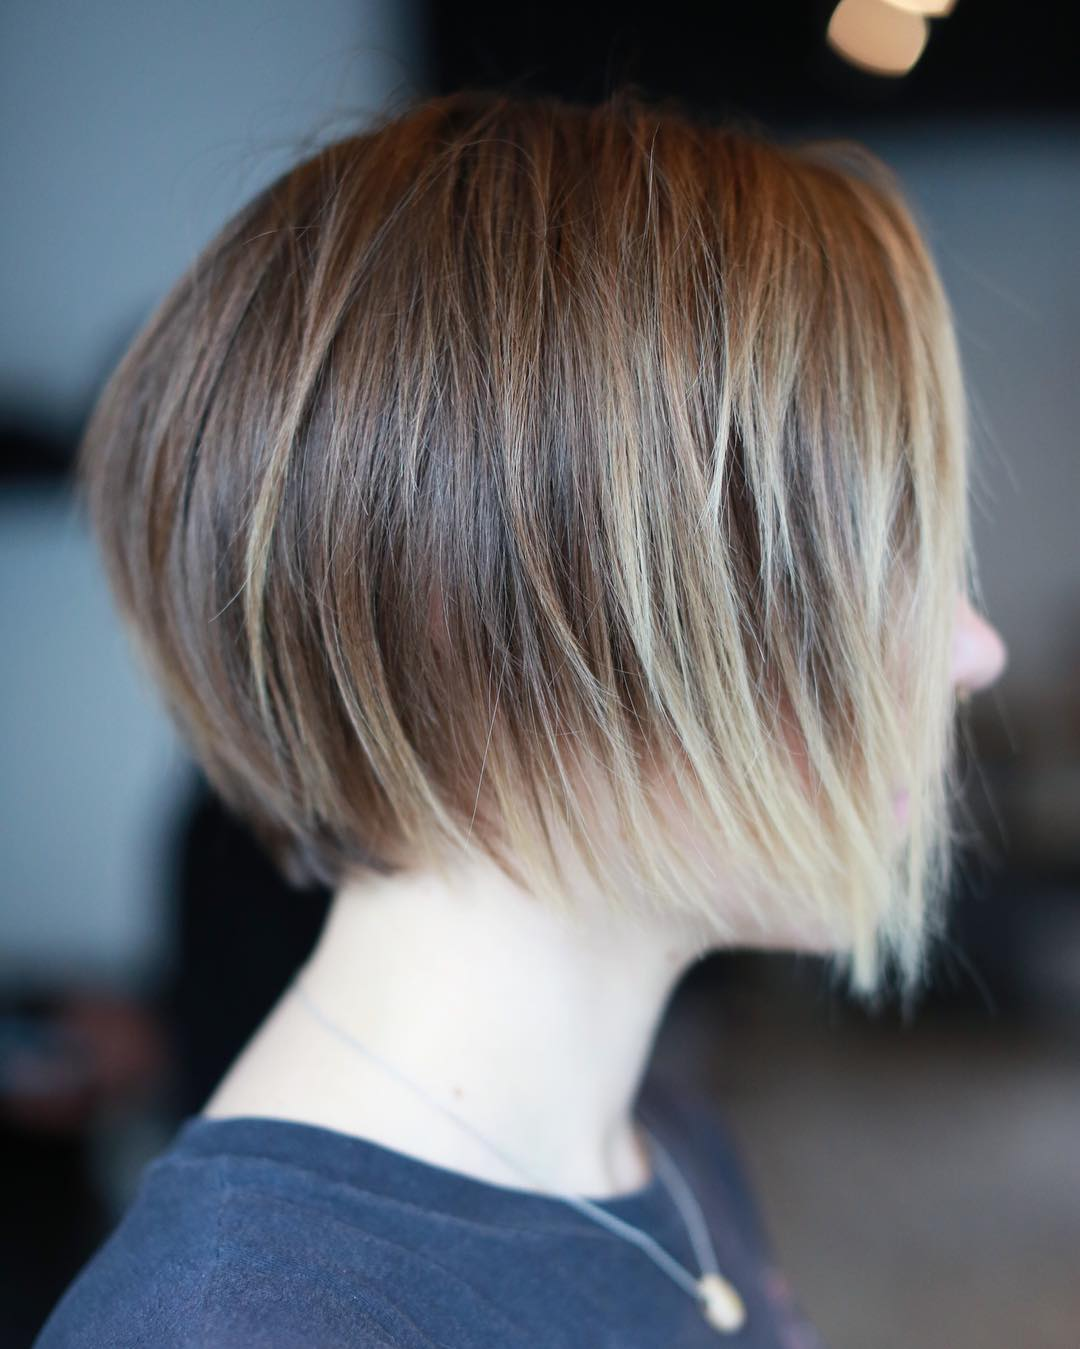 8-brown-bob-with-blonde-balayage-highlights 8-brown-bob-with-blonde-balayage-highlights